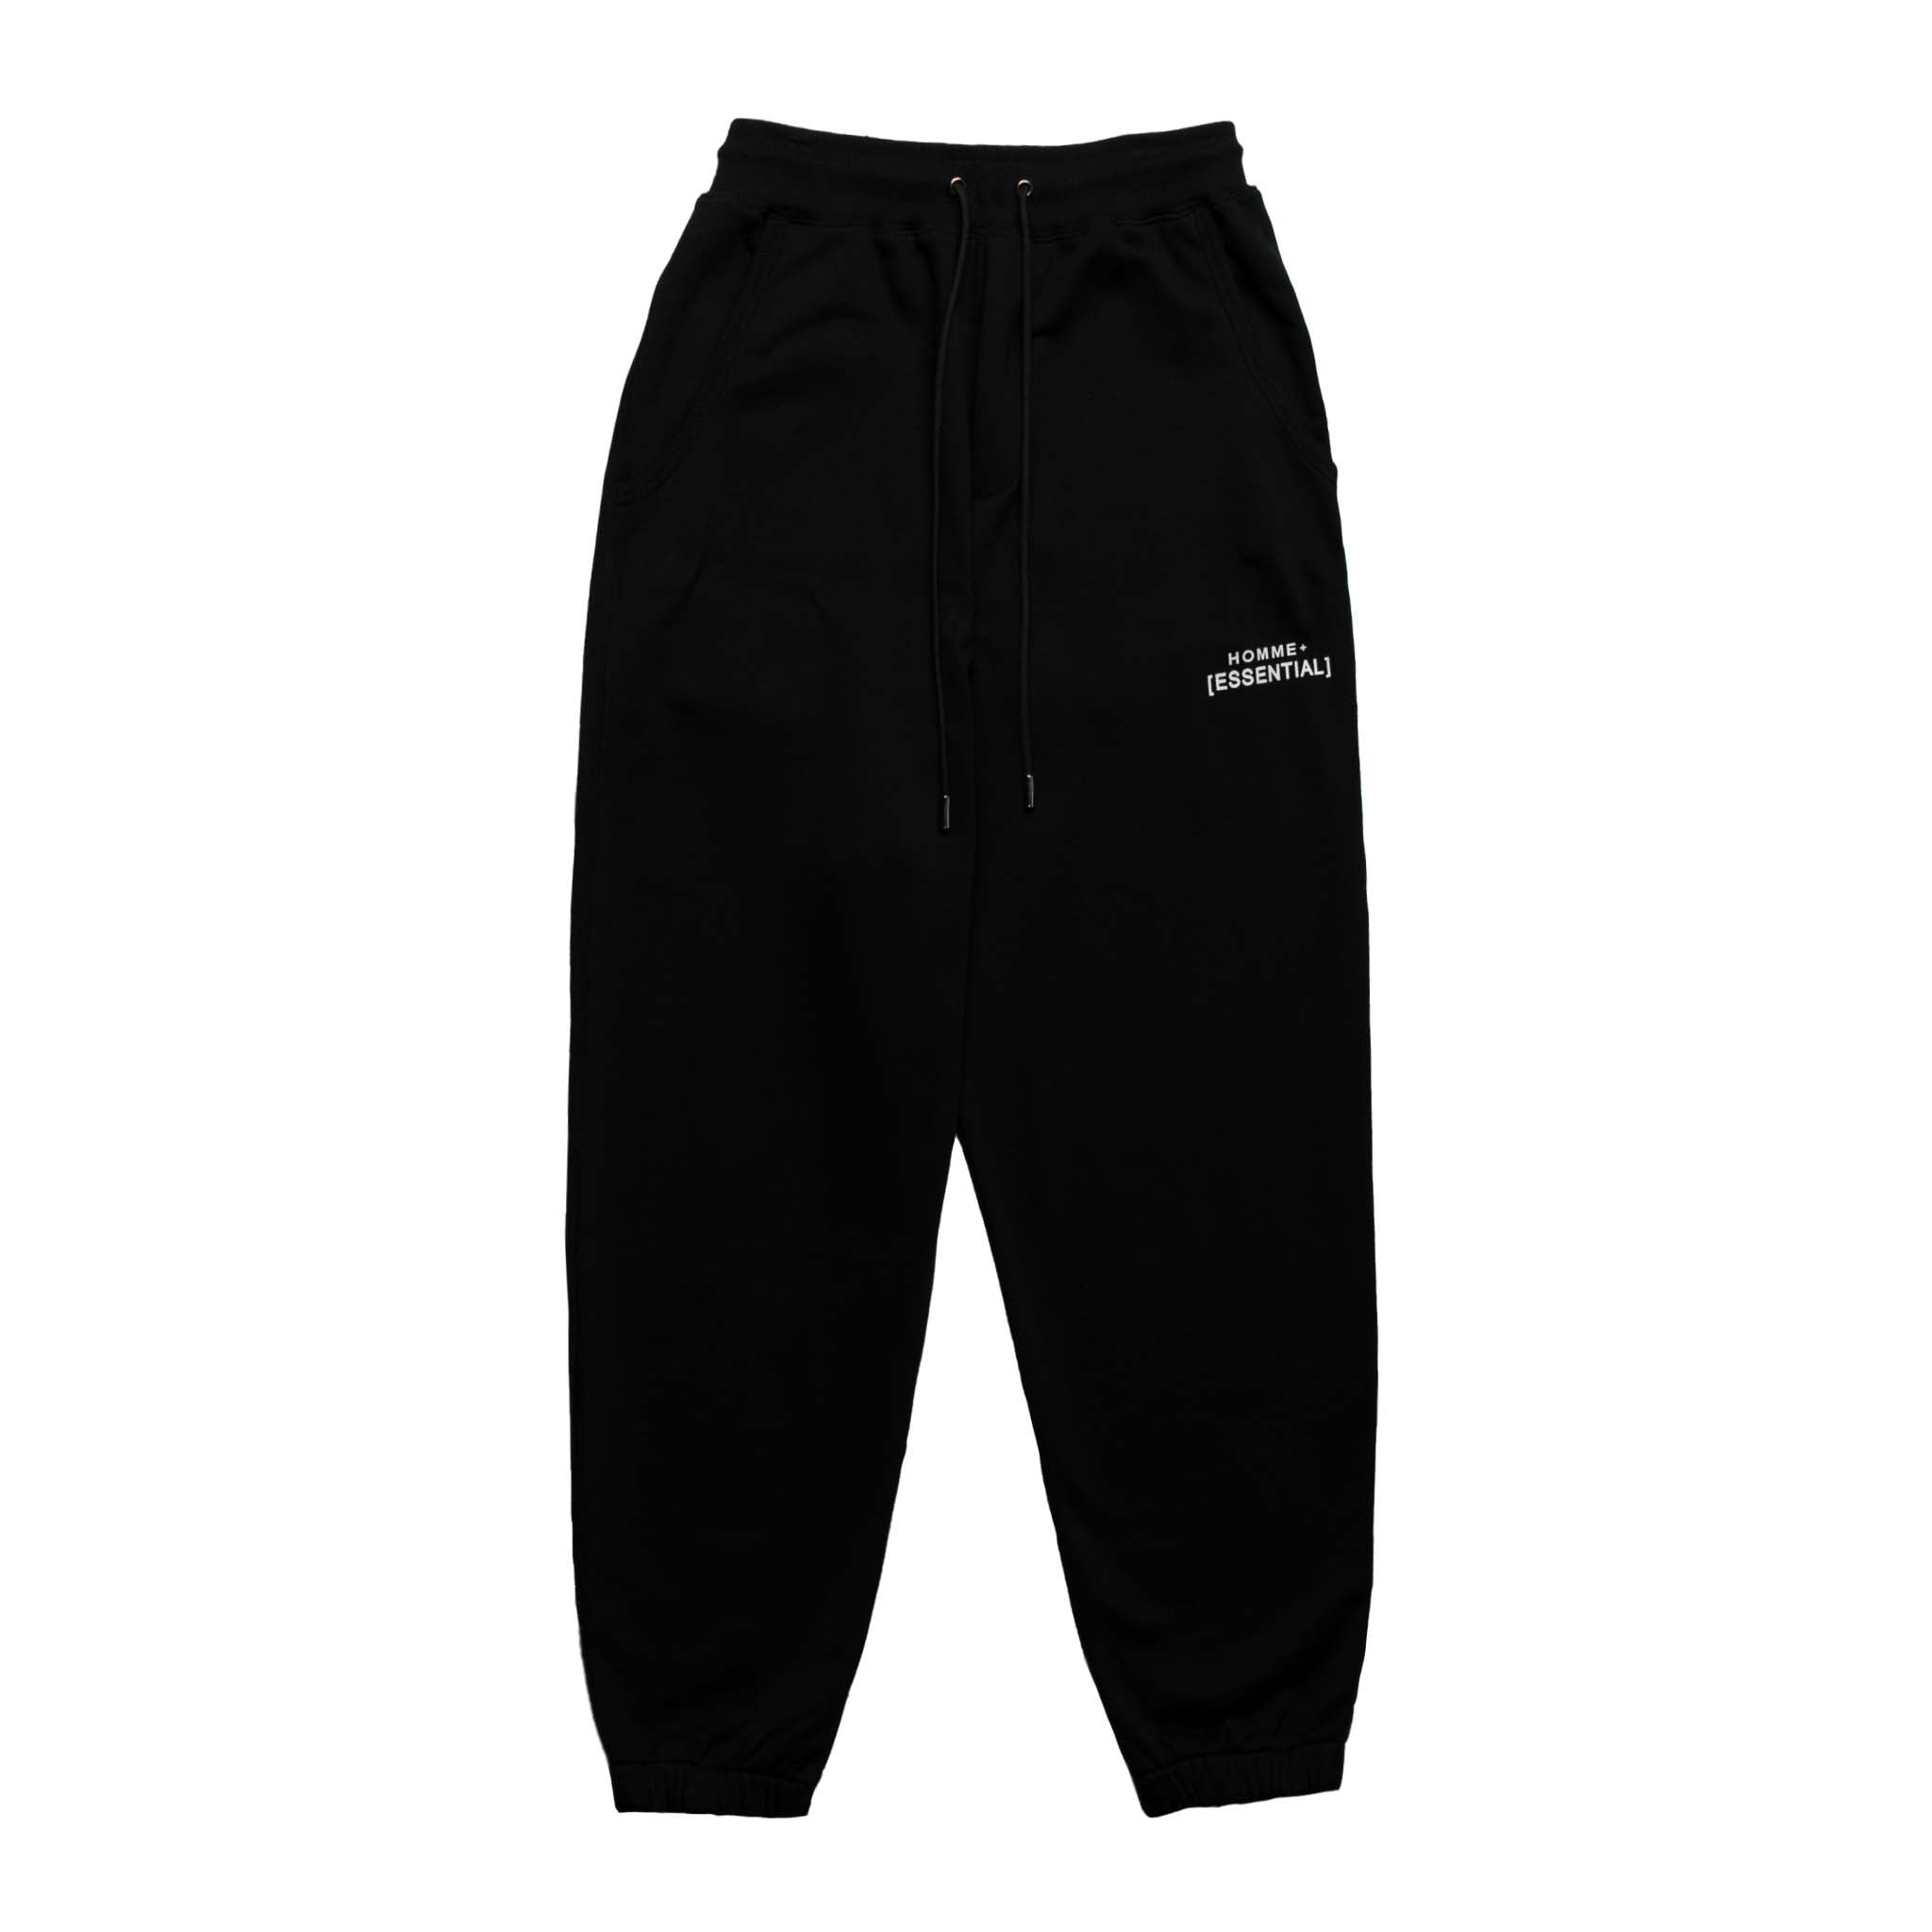 HOMME+ 'ESSENTIAL' Knit Jogger Black